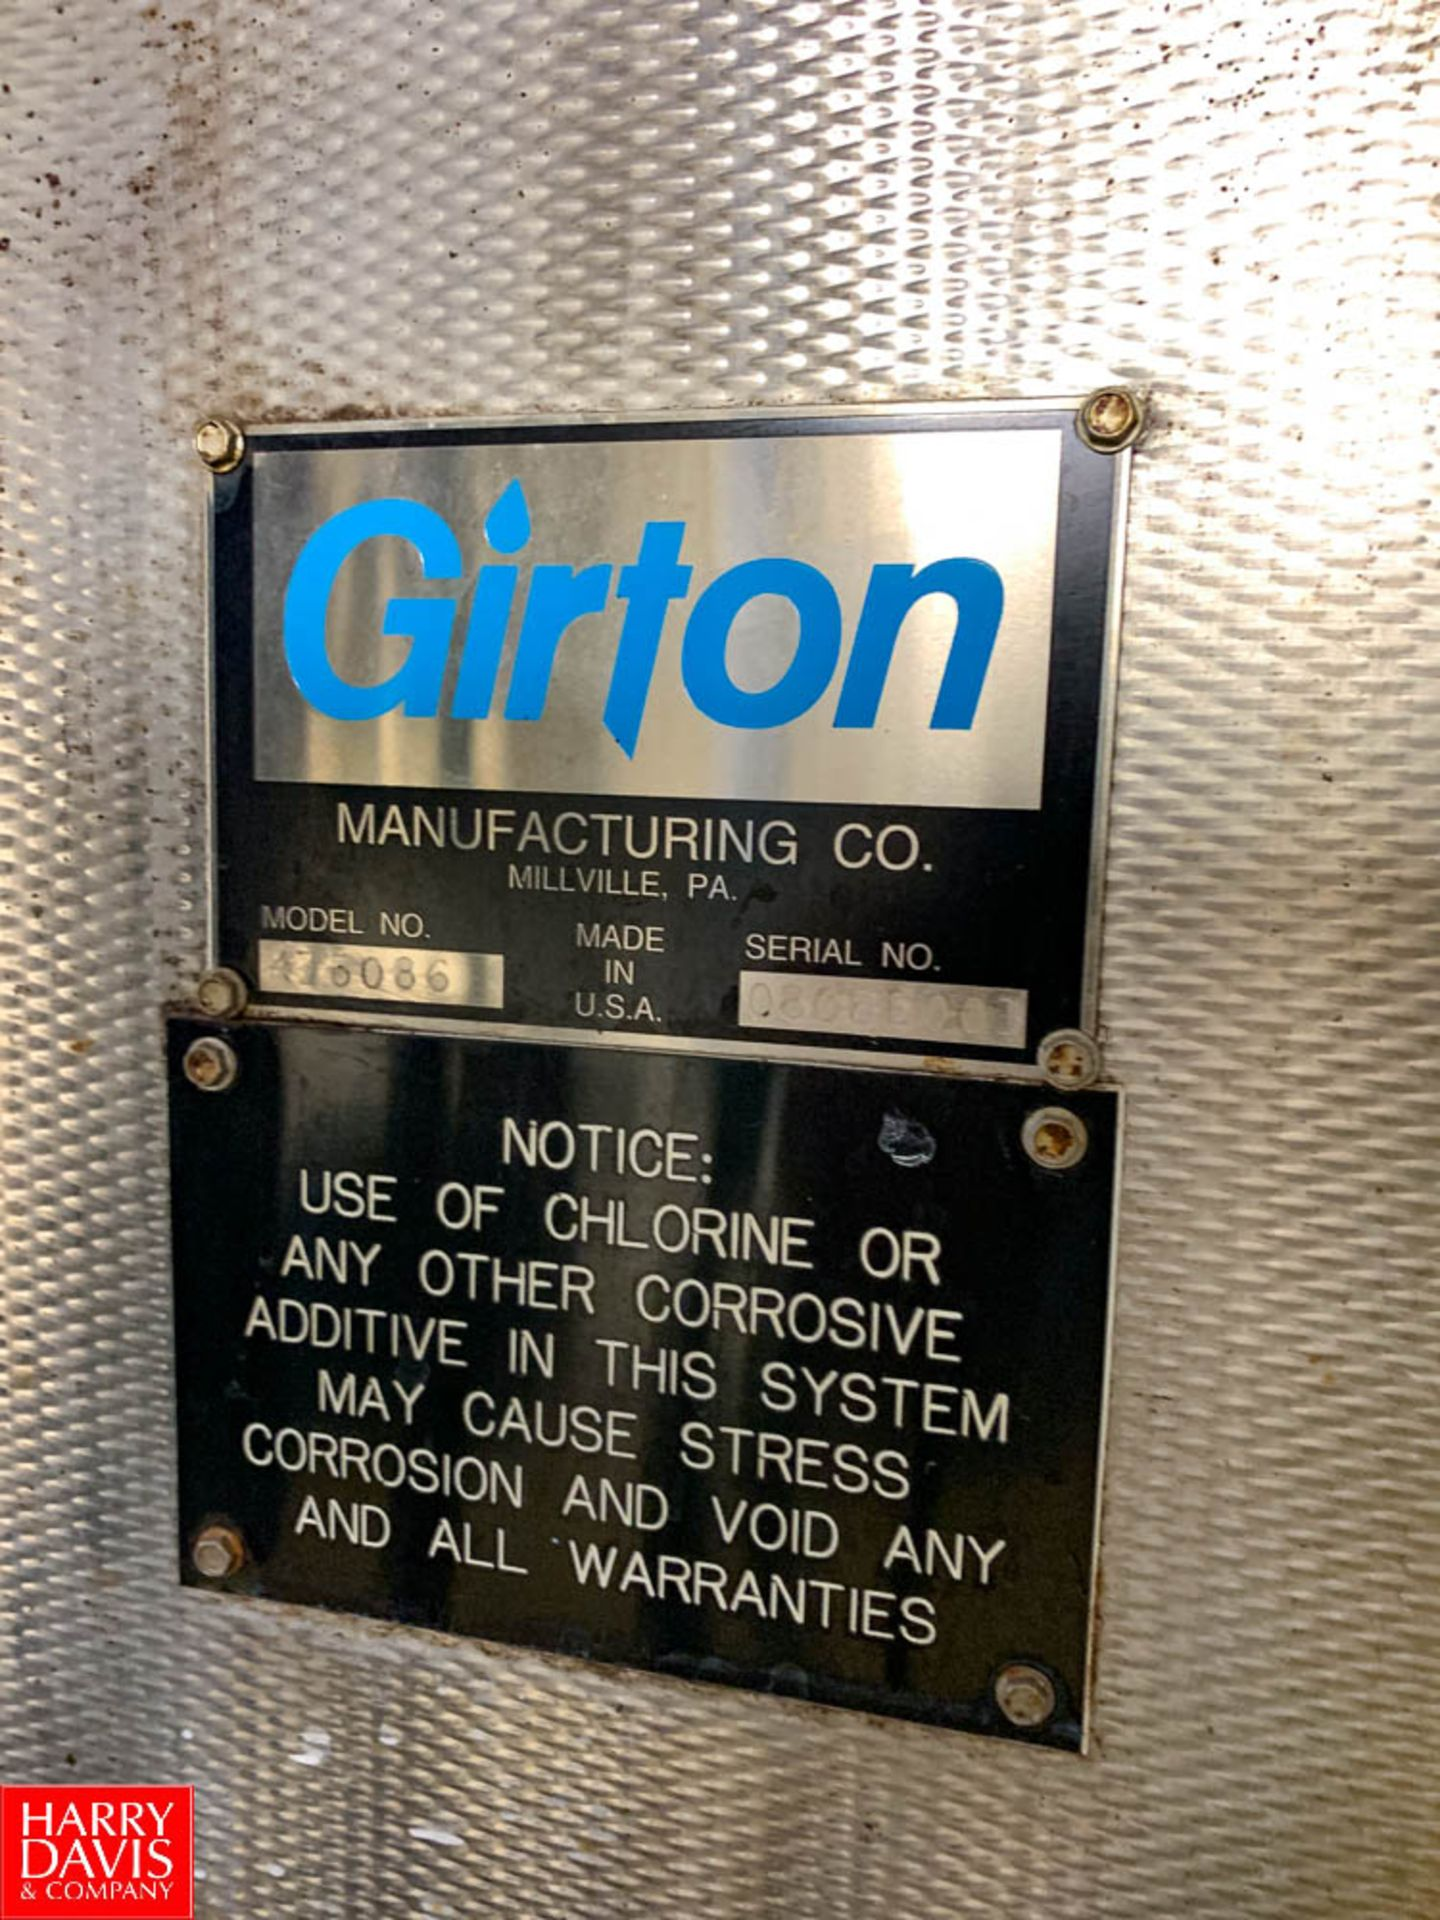 Girton Freon Refrigerated Ice Builder Model: KZ6086, S/N: 08053001, with S/S Coils, (2) Pumps and ( - Image 2 of 3